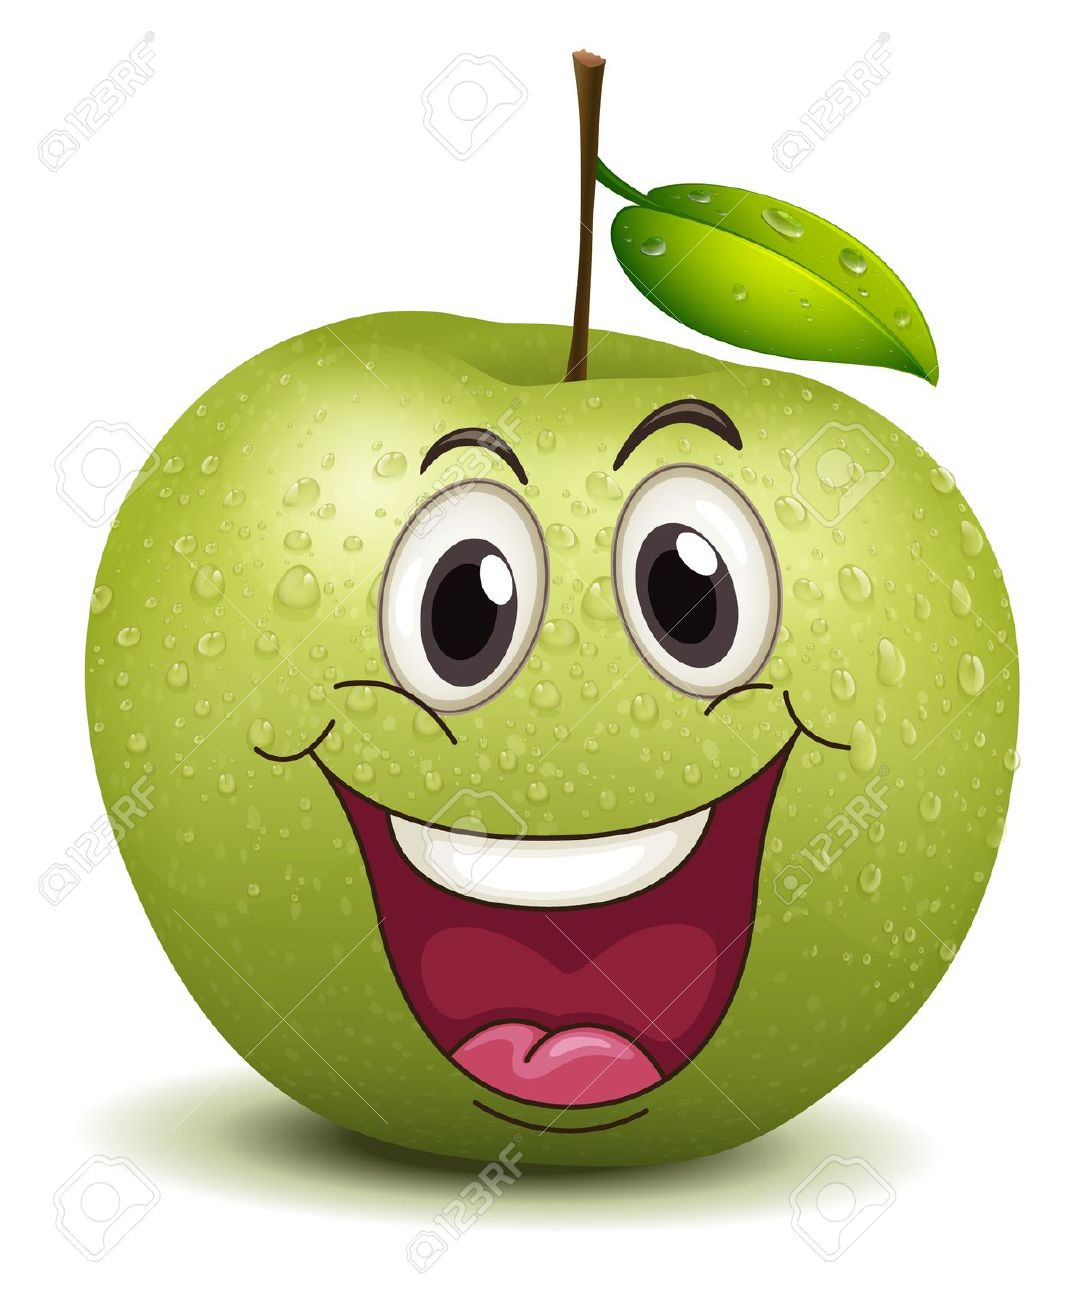 Apple clipart smiley  Search You Faces black